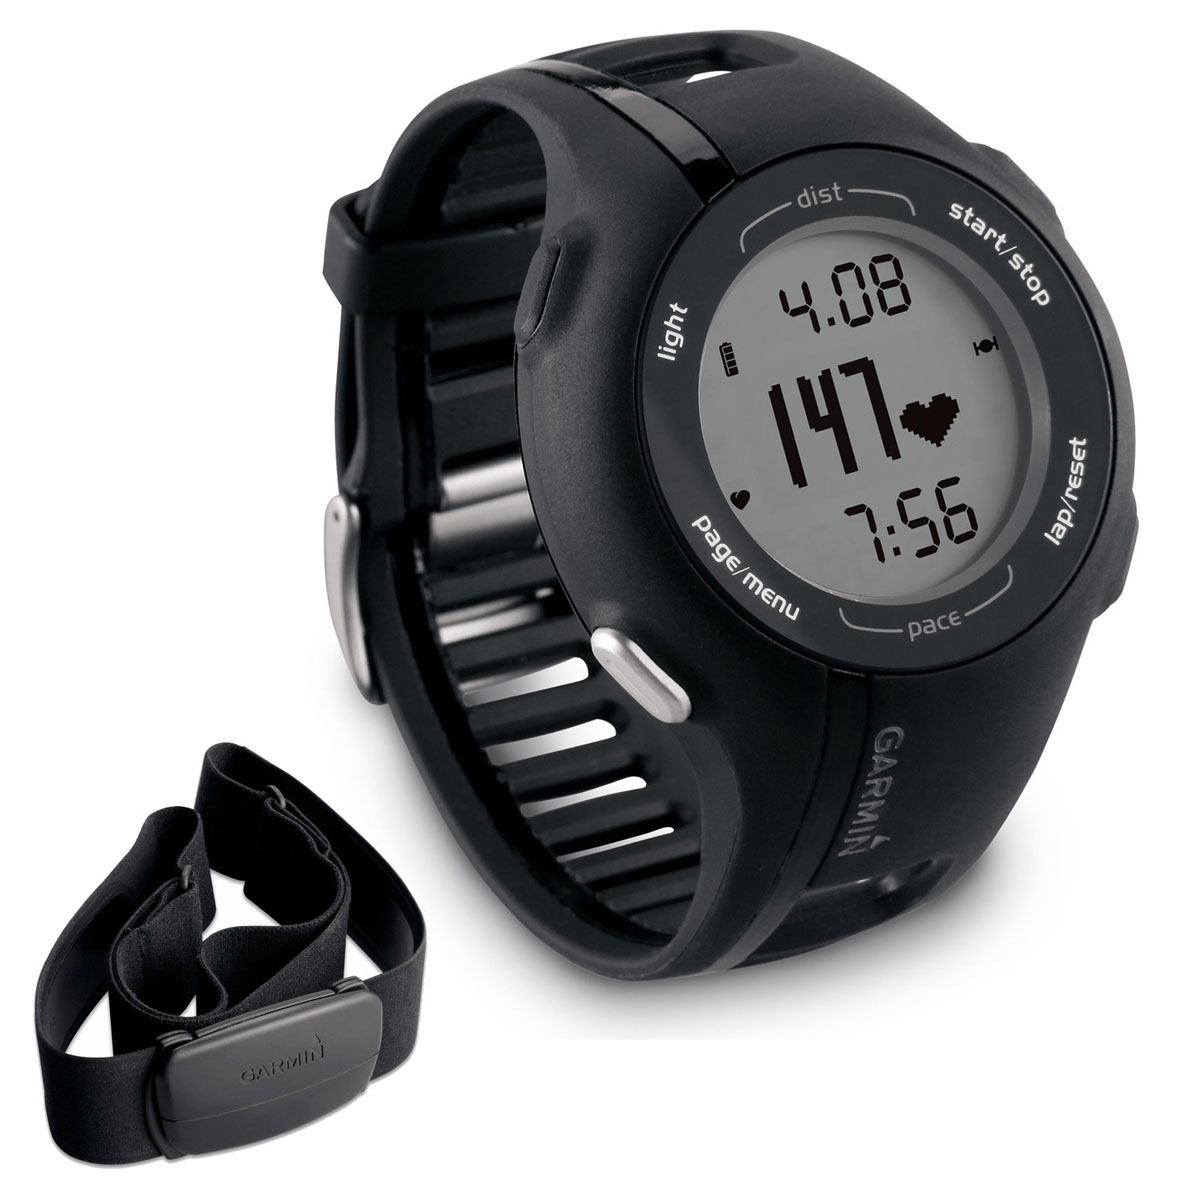 garmin forerunner 210 hrm montre running garmin sur. Black Bedroom Furniture Sets. Home Design Ideas